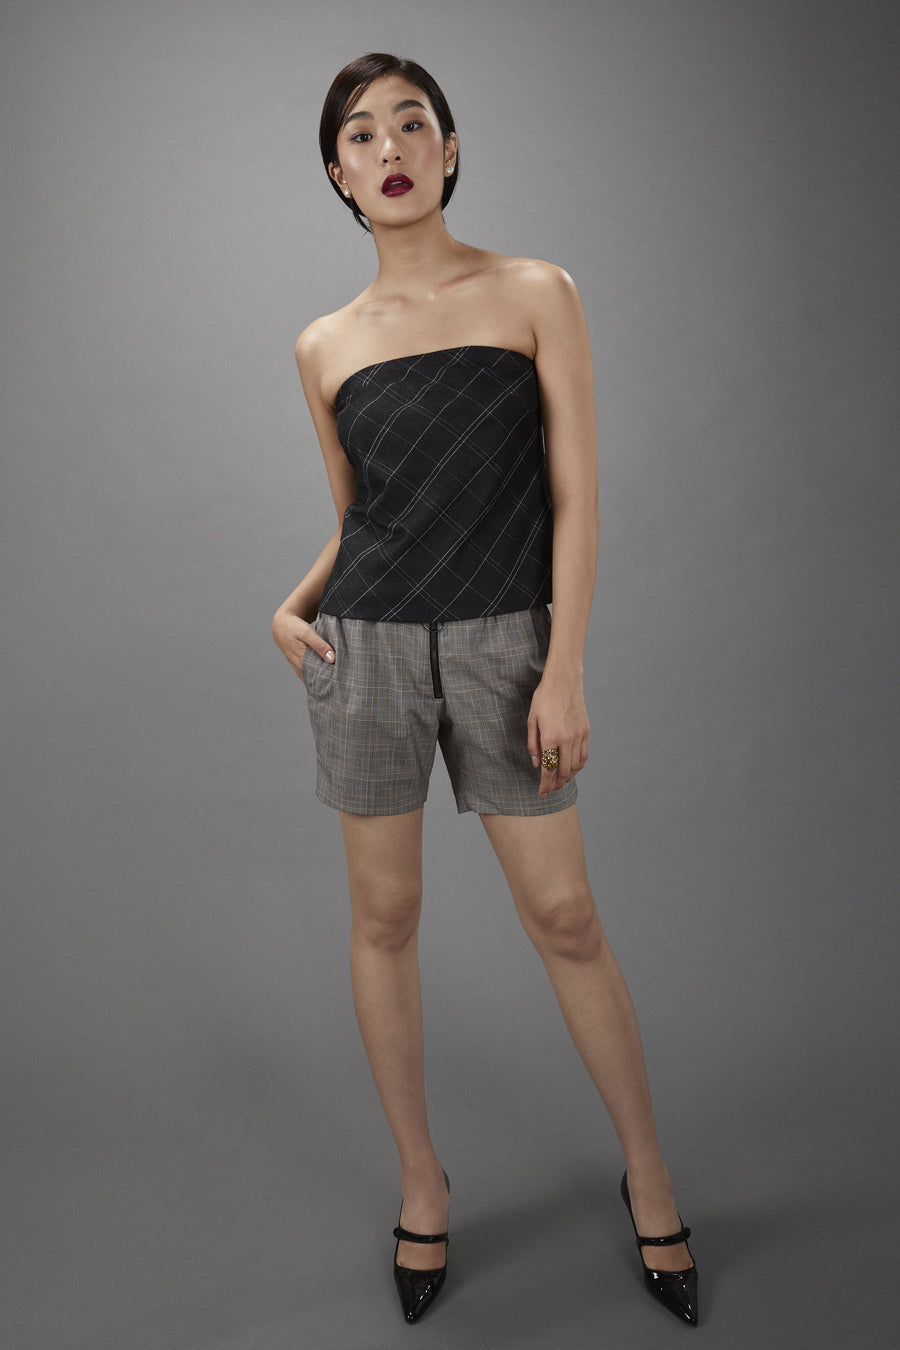 Strapless Top in Charcoal Windowpane.